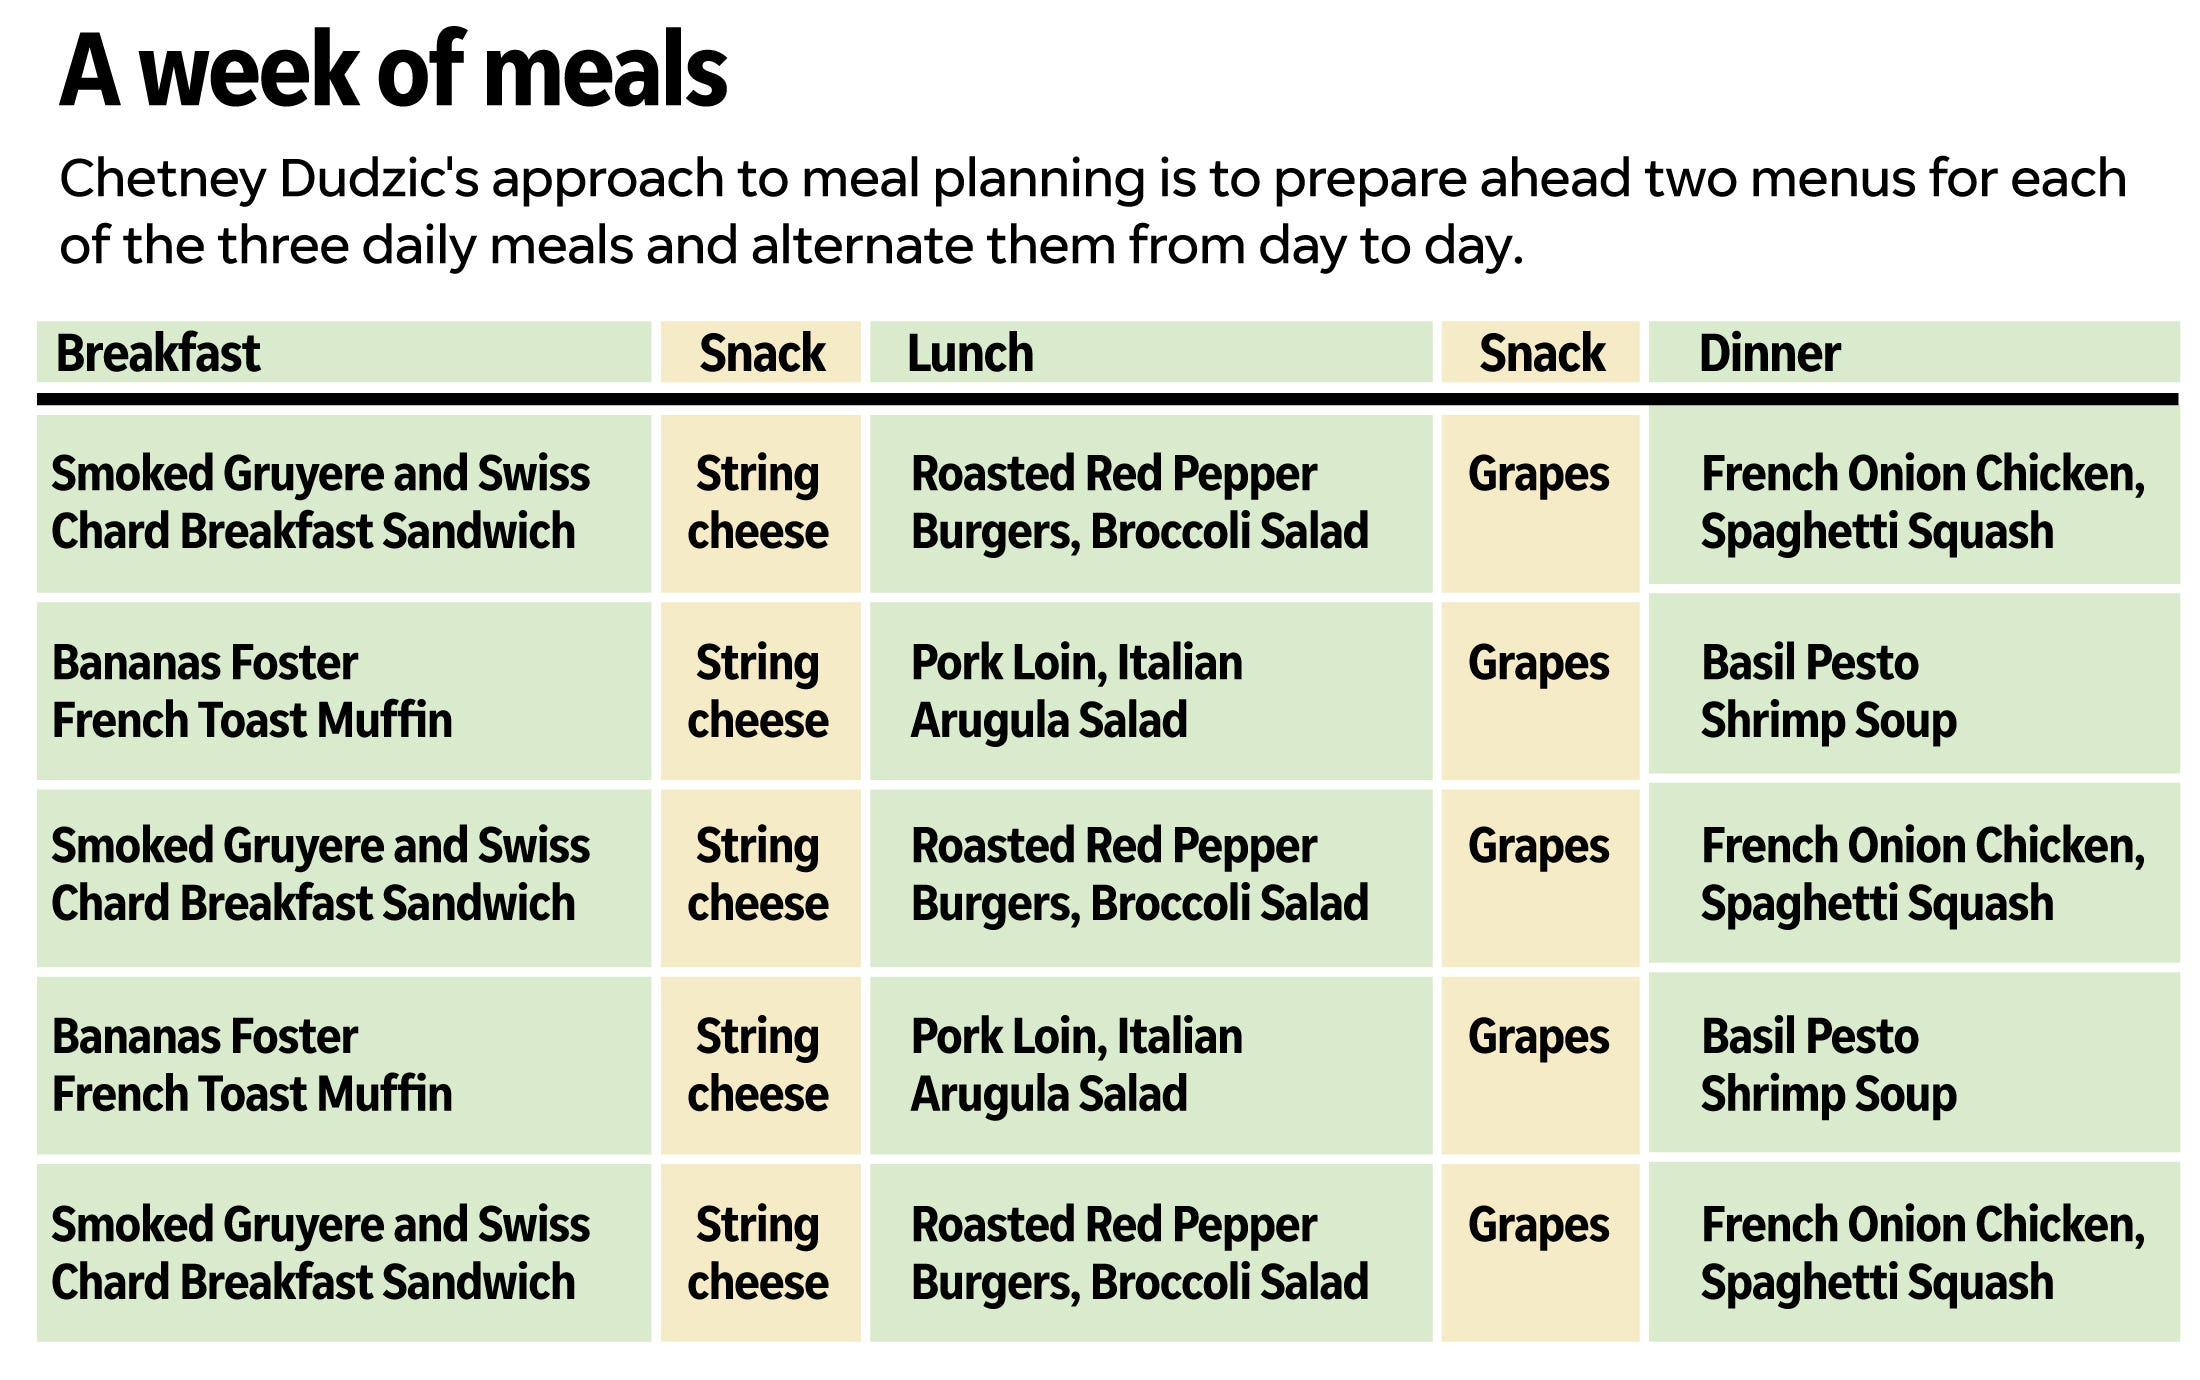 cooking ahead is cheaper saves time and yields healthier choices